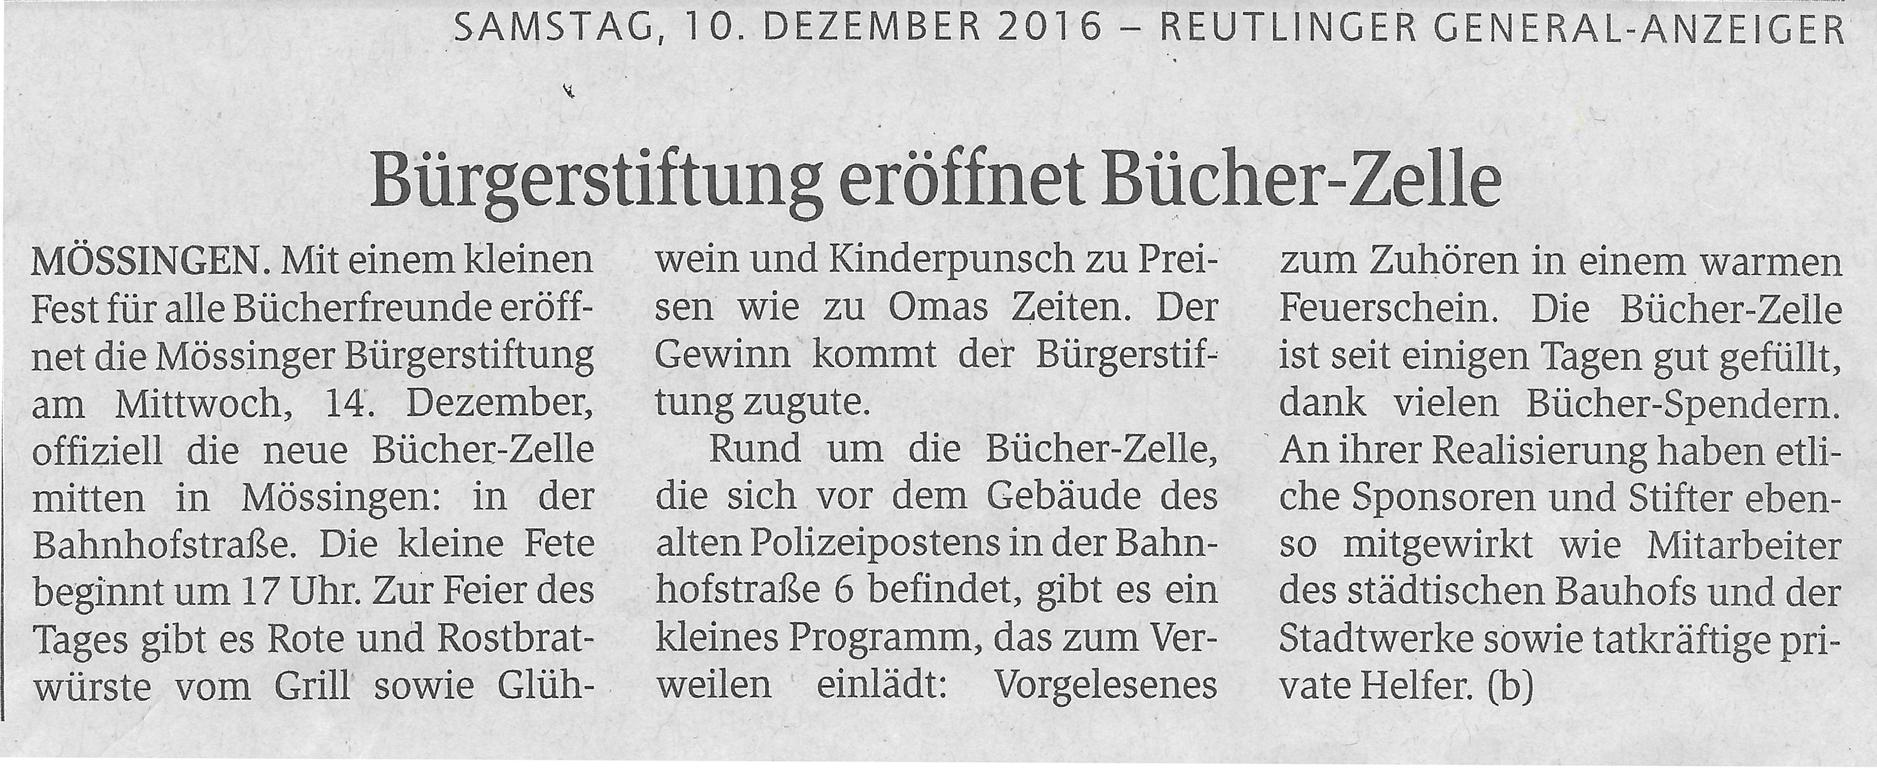 Presse archives b rgerstiftung m ssingen for Reutlinger general anzeiger immobilien